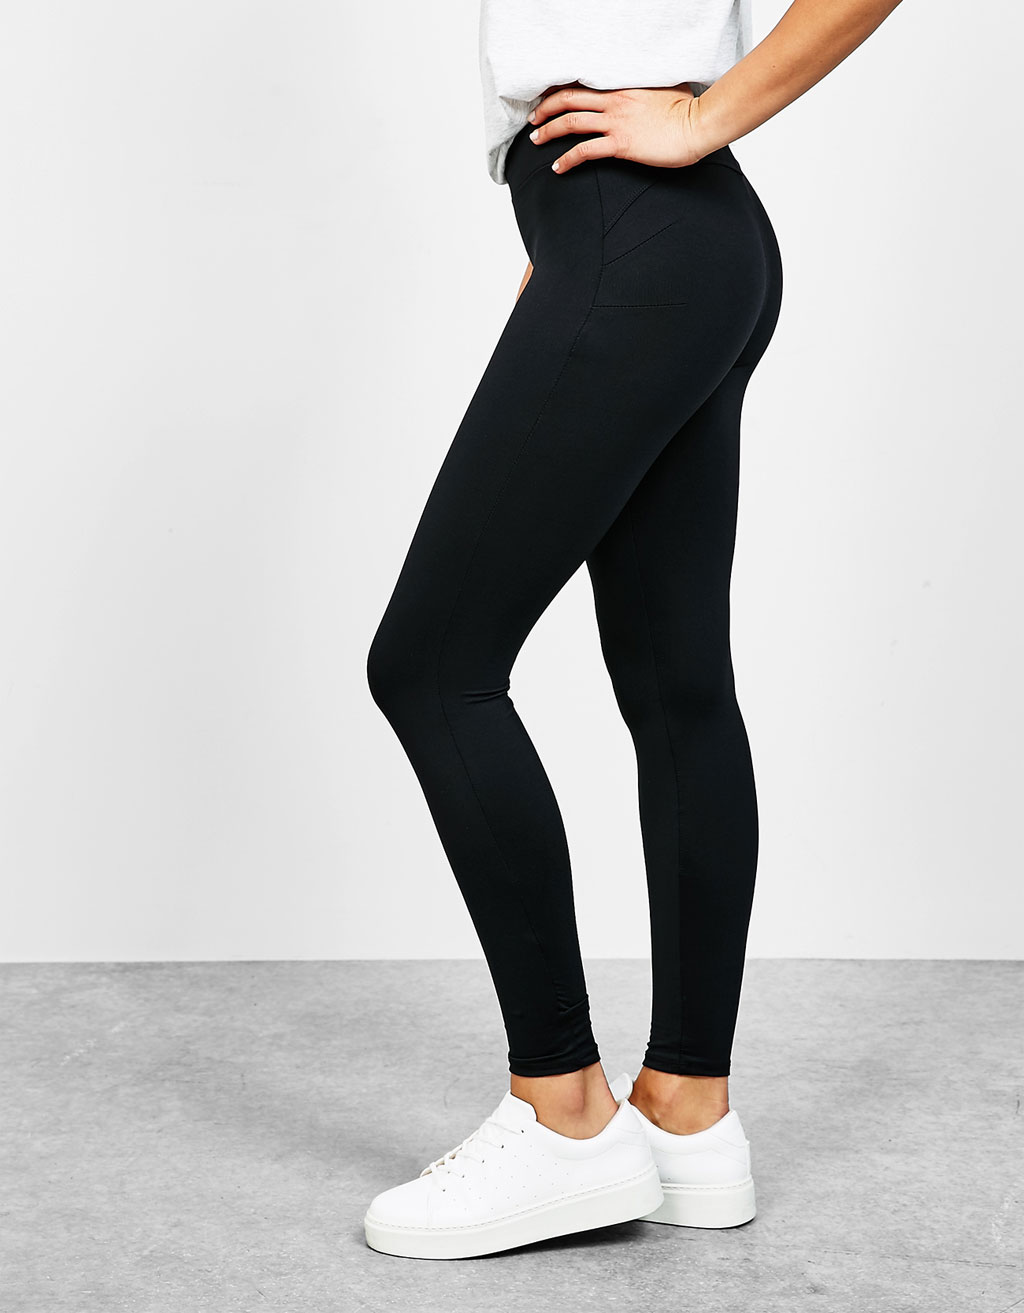 Nylon push-up leggings